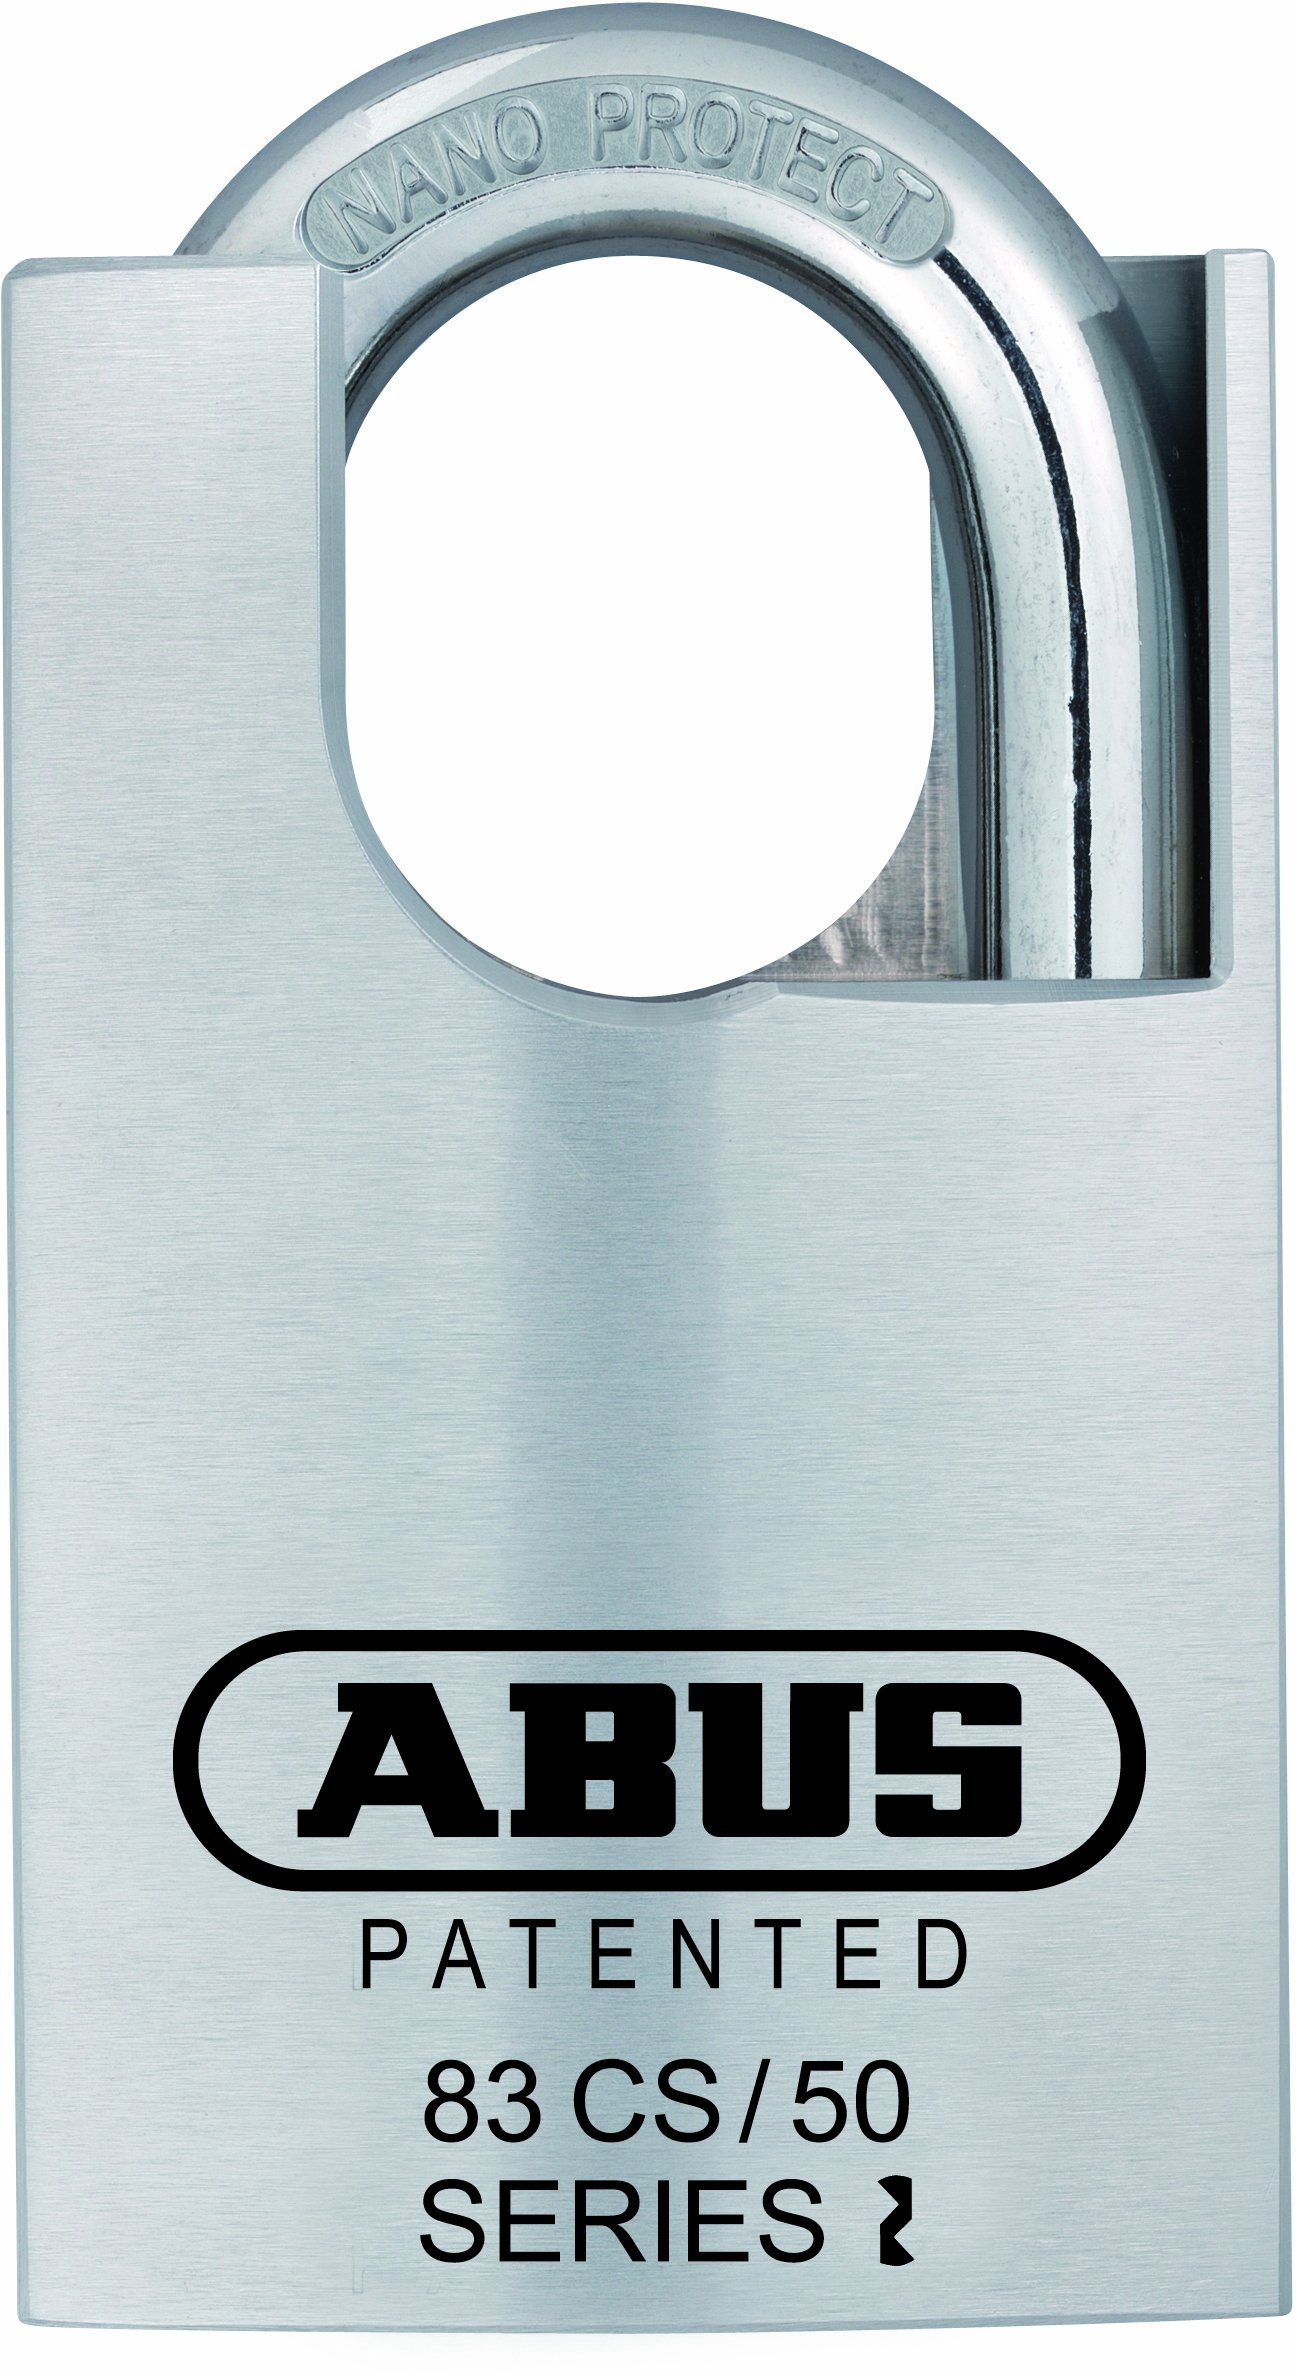 ABUS 83CS/50-300 S2 Schlage 50mm Rekeyable Padlock All Weather Solid Brass Chrome Plated Body, 1-Inch Closed Shackle, Zero-Bitted